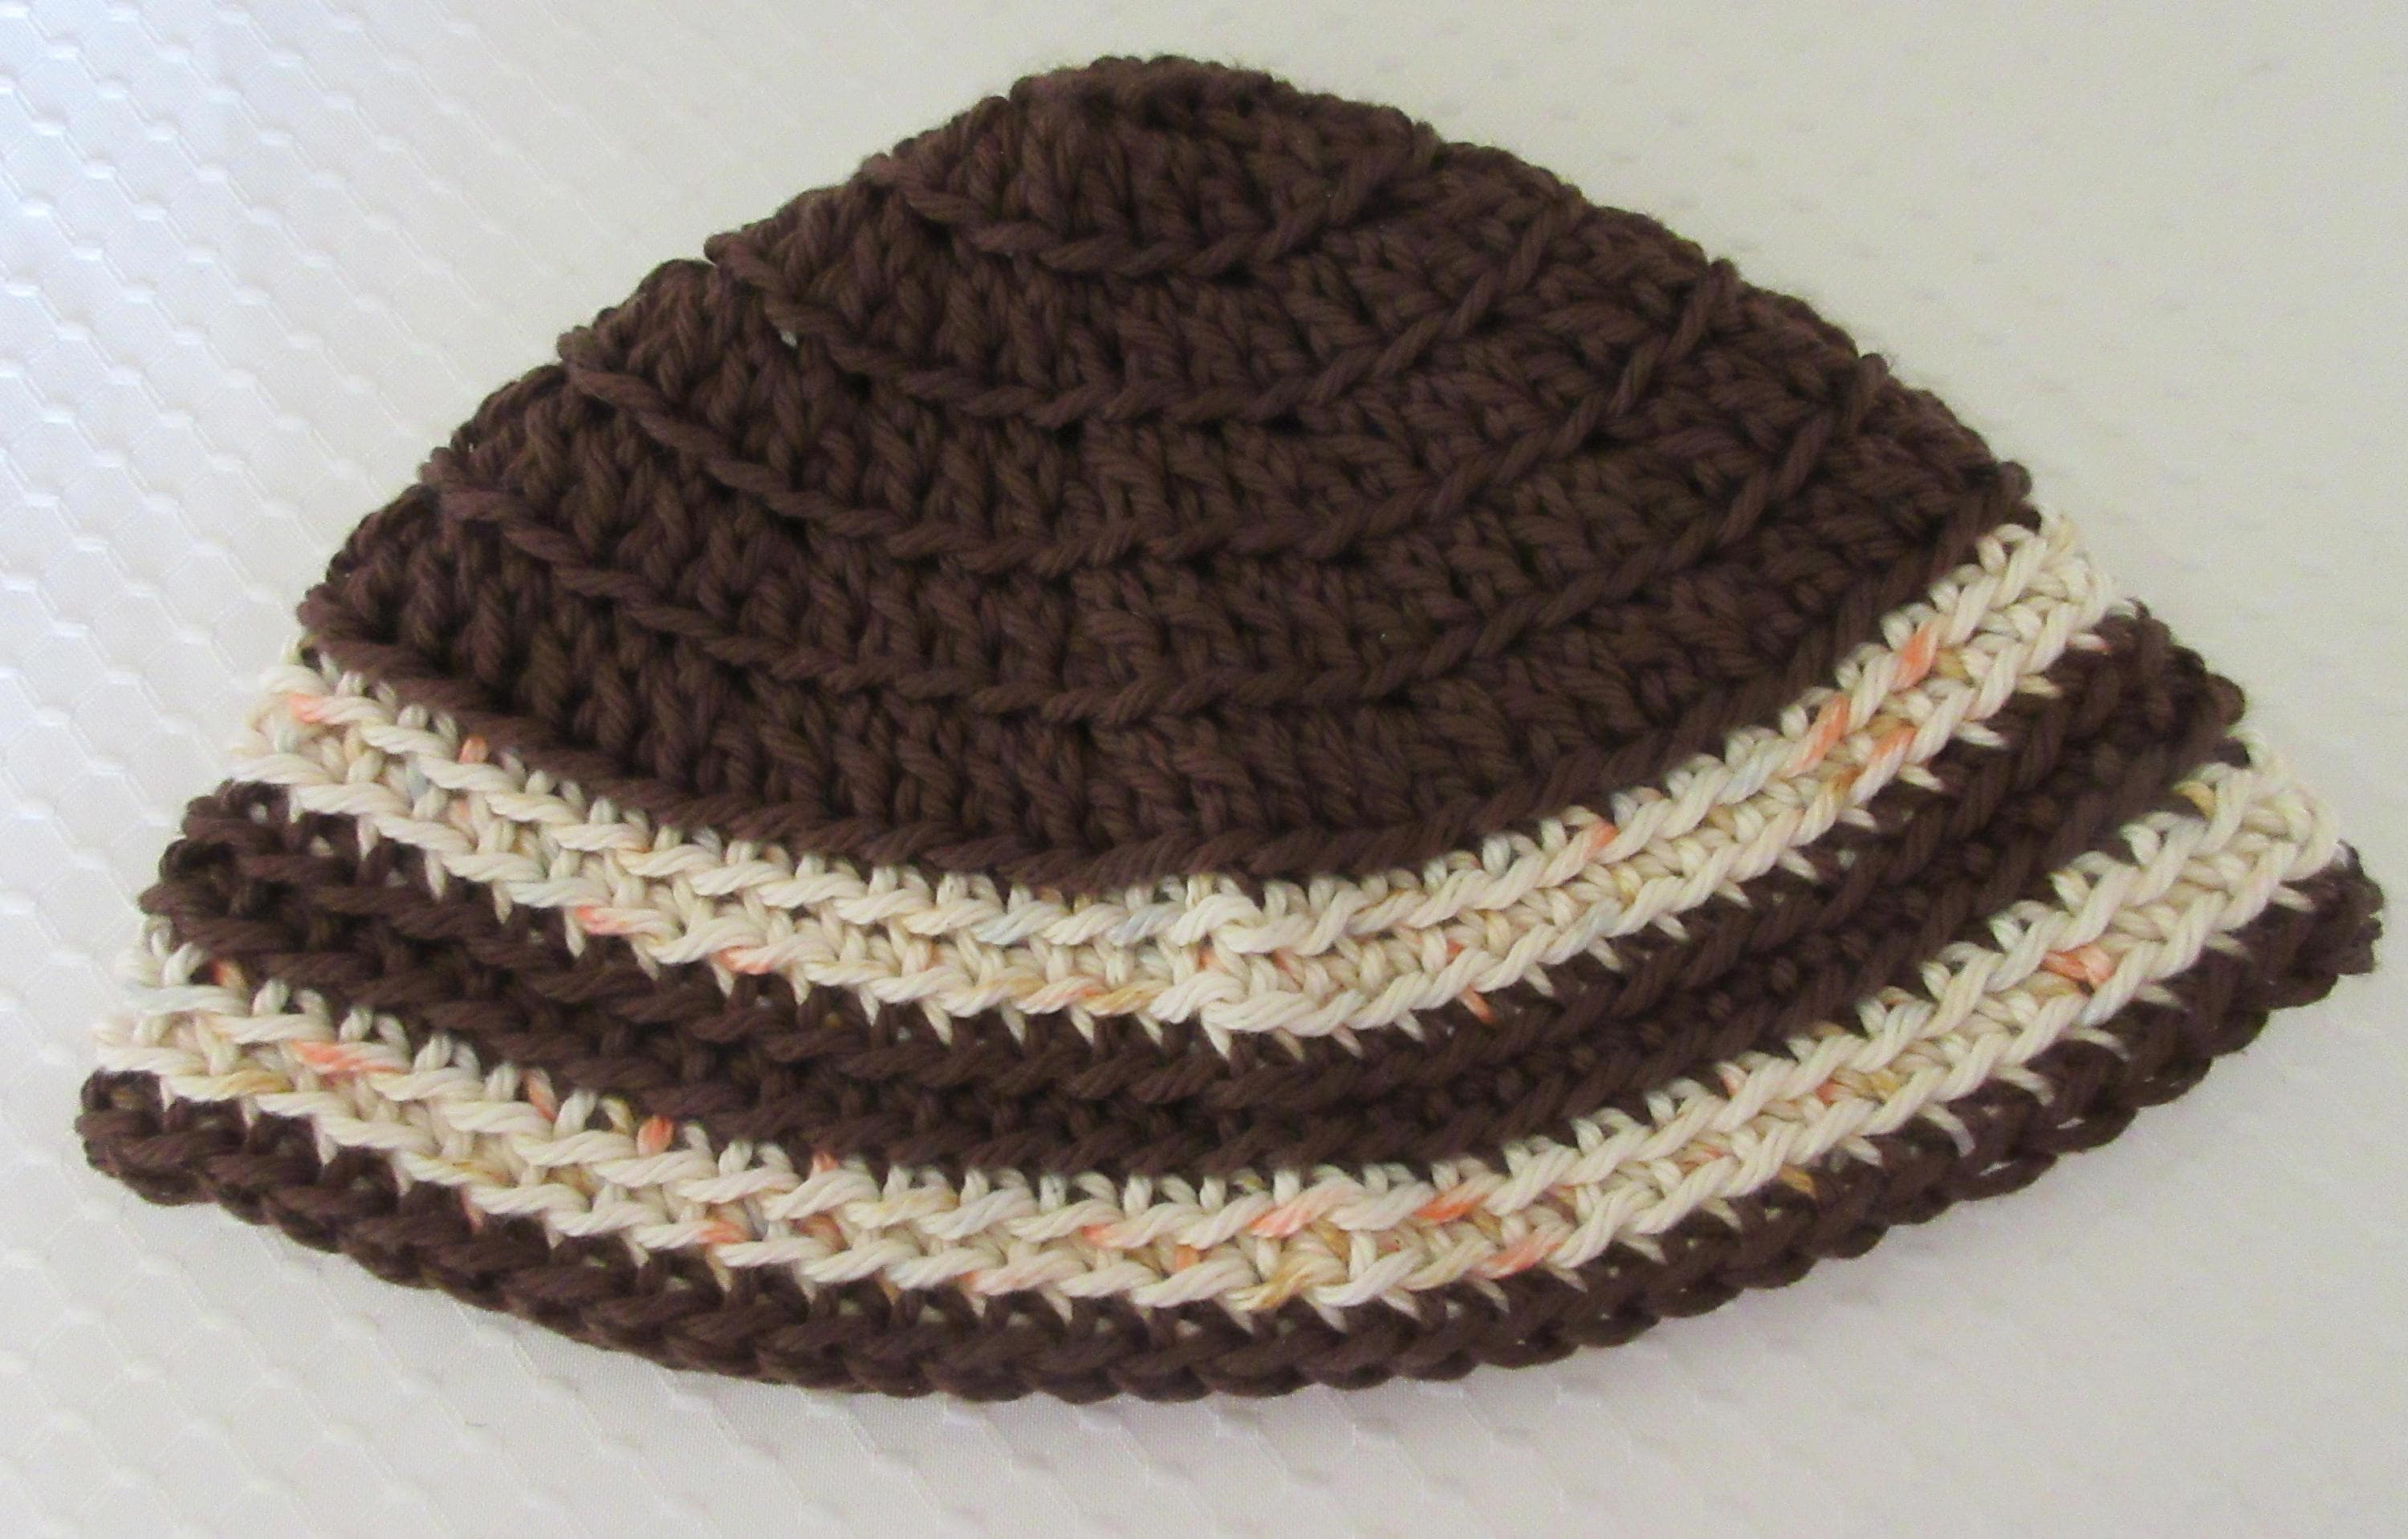 Brown Kippot Kippah Extra Large Crochet Kippot Jewish Head